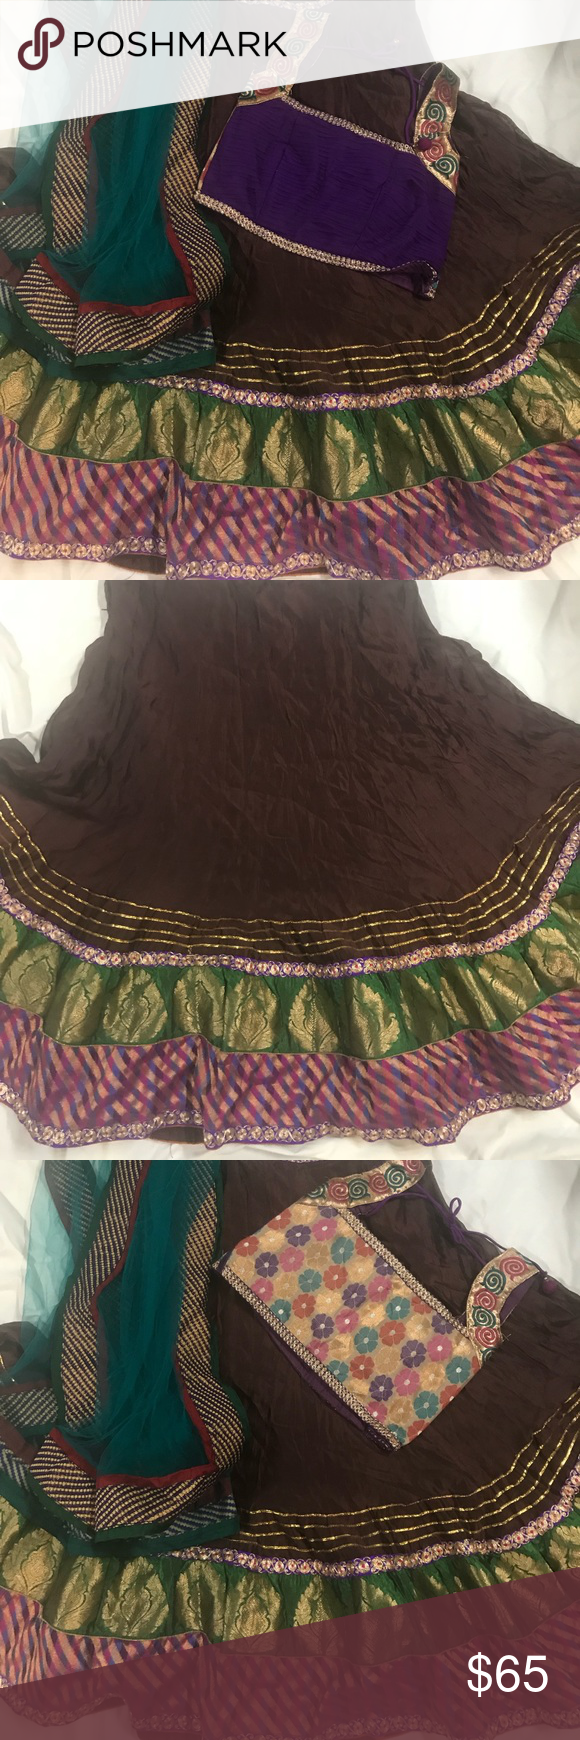 Chaniya choli size!!!36!!!! Beautiful color combination chaniya choli in size 36 ... for garba or any other occasion.sleeveless blouse with contrast design on the back.. Dresses Wedding #chaniyacholi